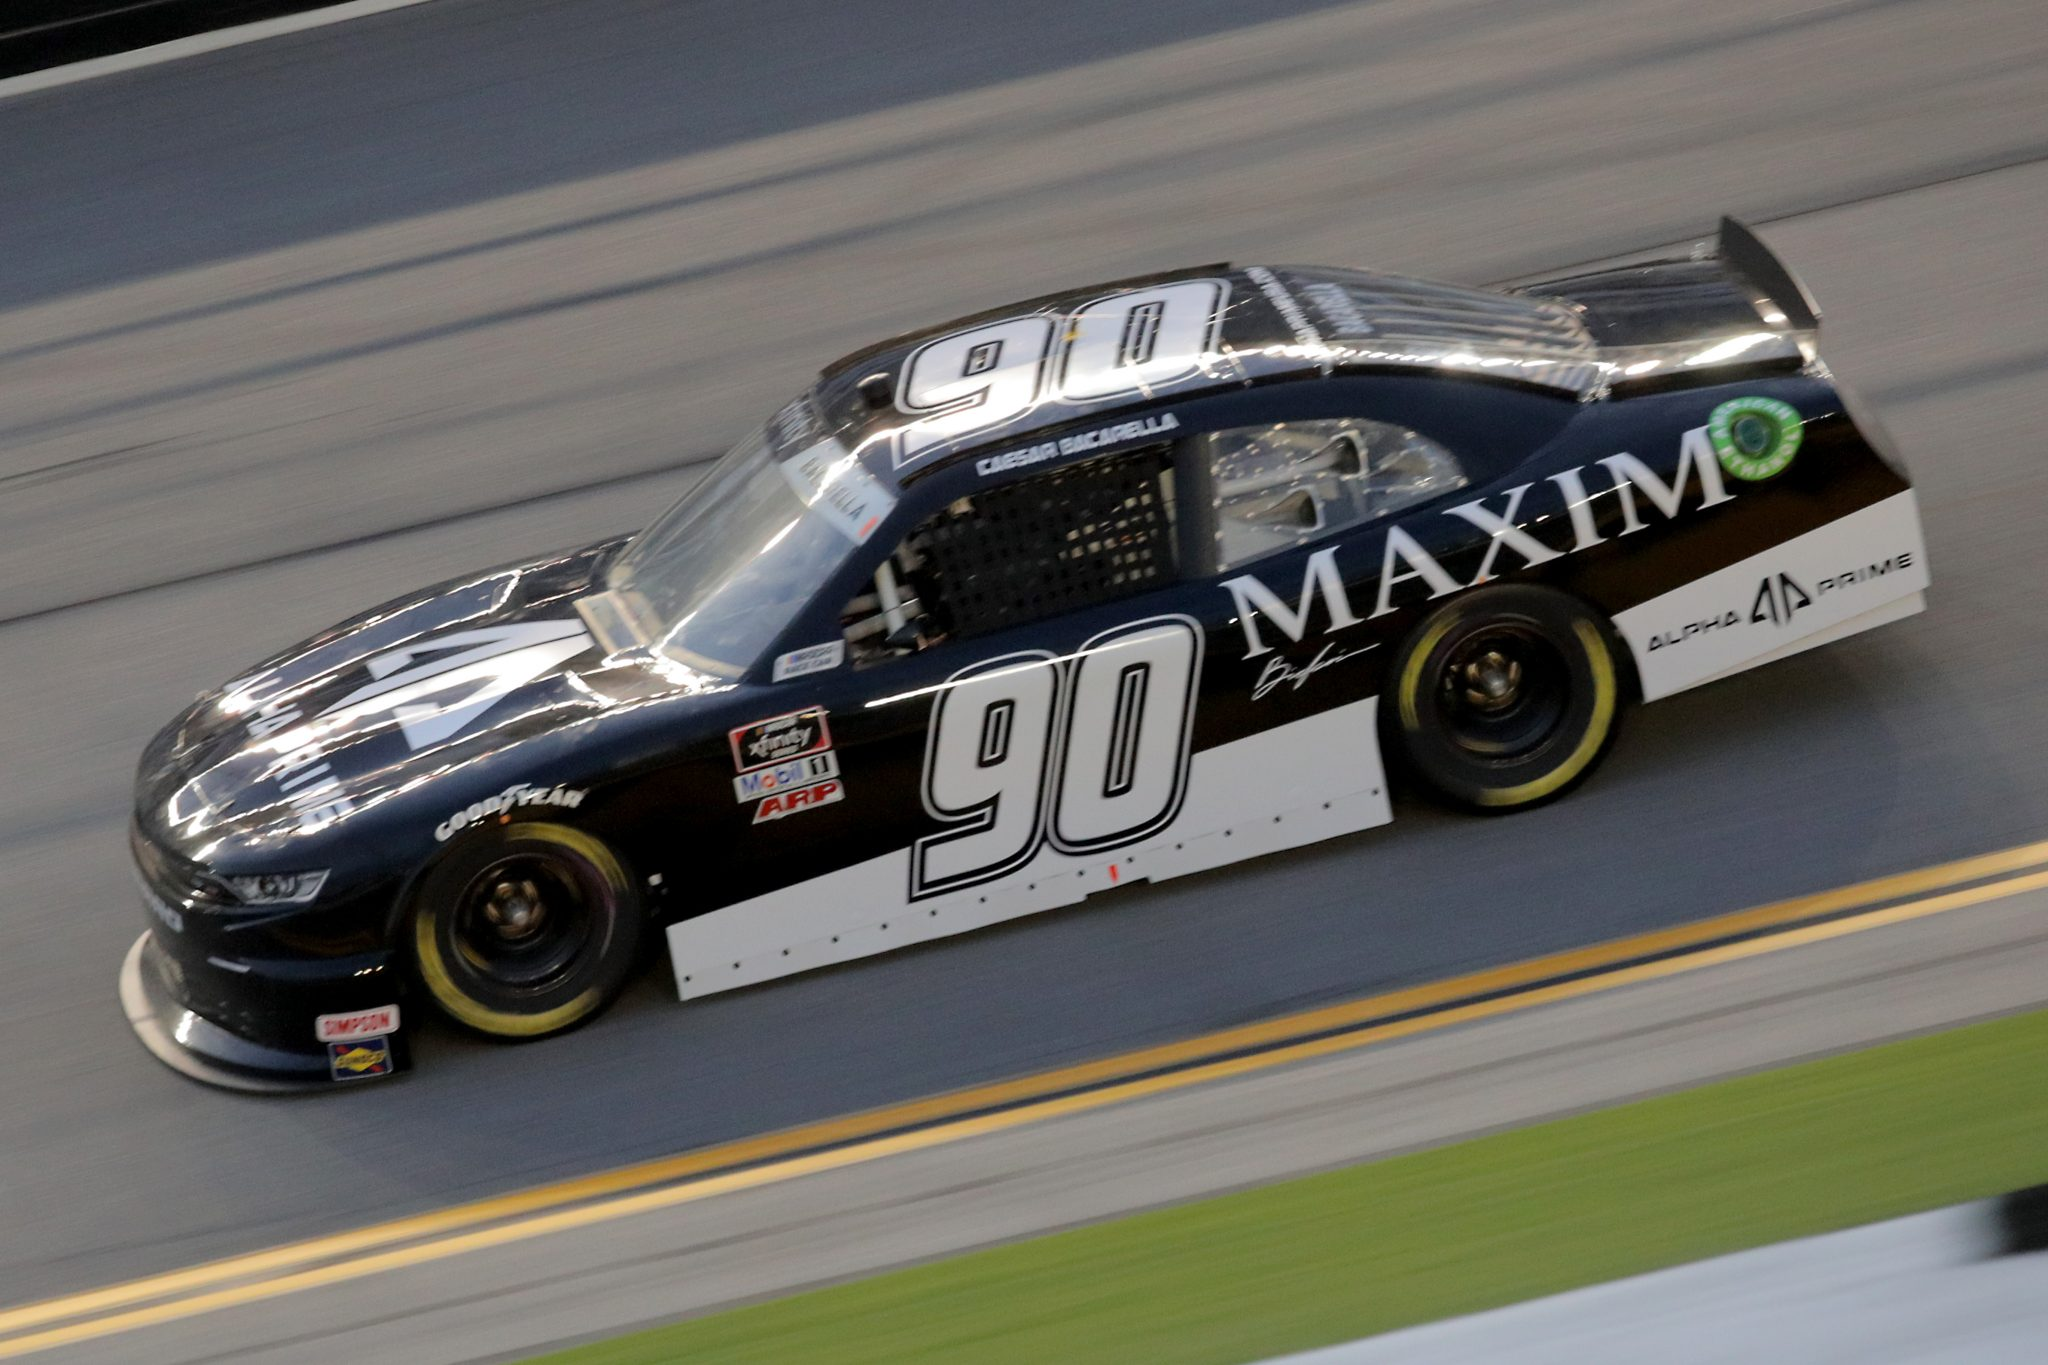 DAYTONA BEACH, FLORIDA - AUGUST 28: Caesar Bacarella, driver of the #90 Alpha Prime/Maxim Chevrolet, drives during the NASCAR Xfinity Series Wawa 250 Powered by Coca-Cola at Daytona International Speedway on August 28, 2020 in Daytona Beach, Florida. (Photo by Chris Graythen/Getty Images) | Getty Images